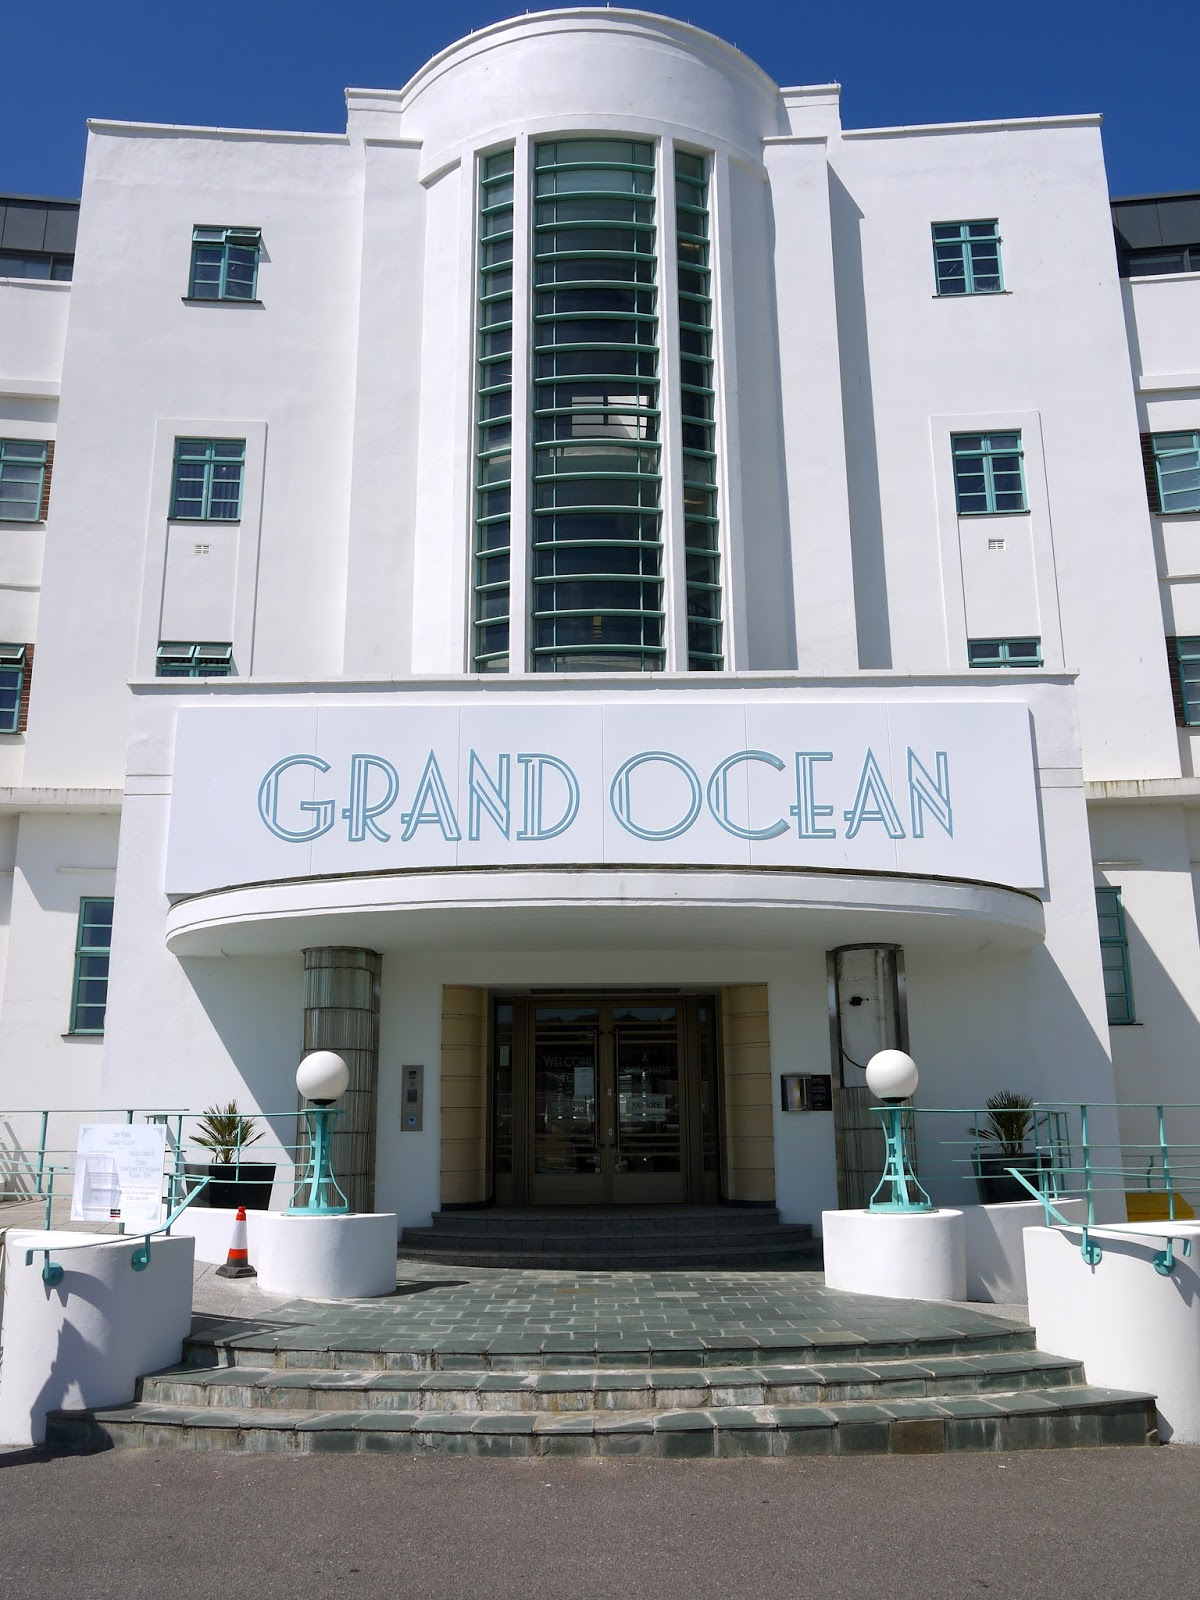 The Ocean Hotel Seaside Art Deco In Saltdean